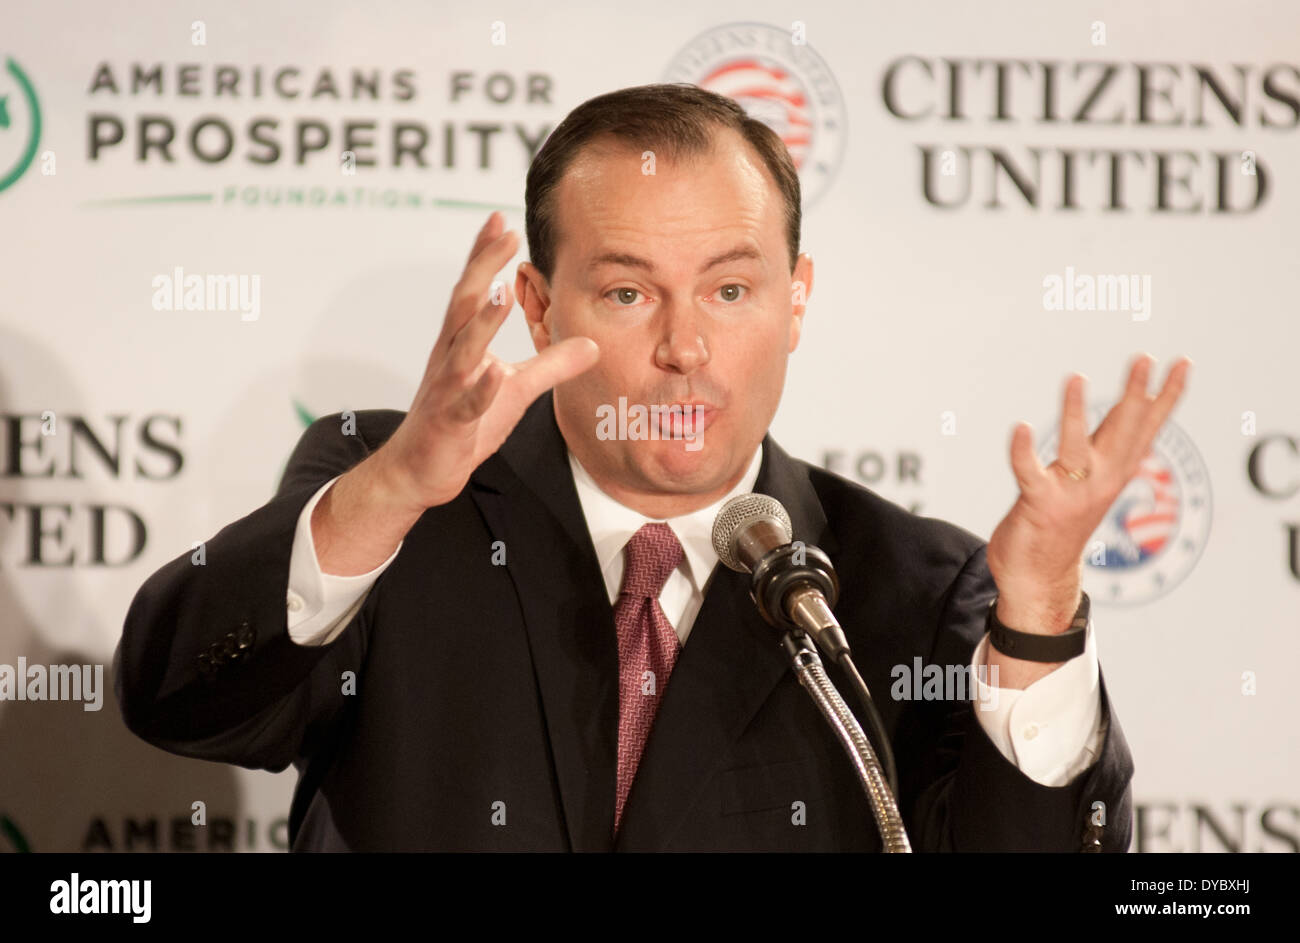 U.S. Senator Mike Lee, Republican of Utah, speaks at a conservative rally in Manchester, New Hampshire, on 4-12-14. - Stock Image